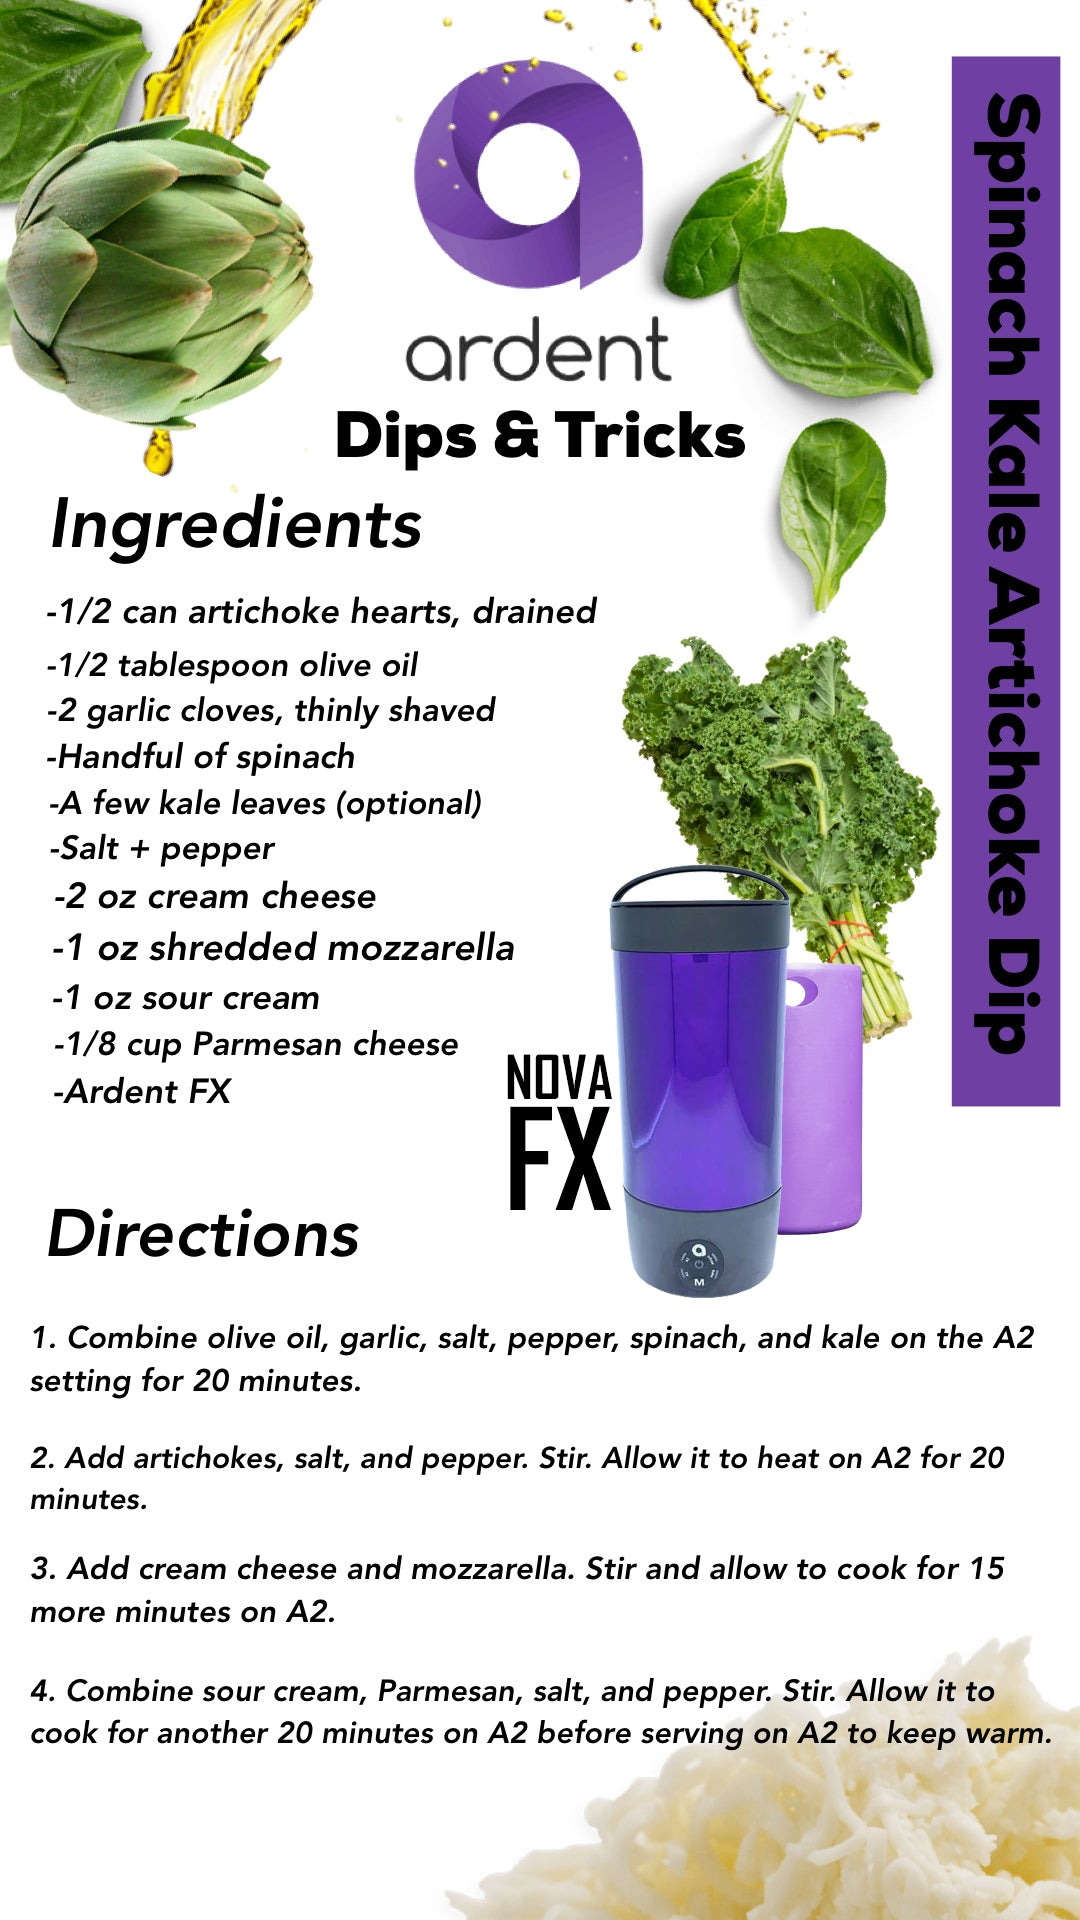 Ardent Nova Free Infusion Recipe NZ - Dips and Tricks